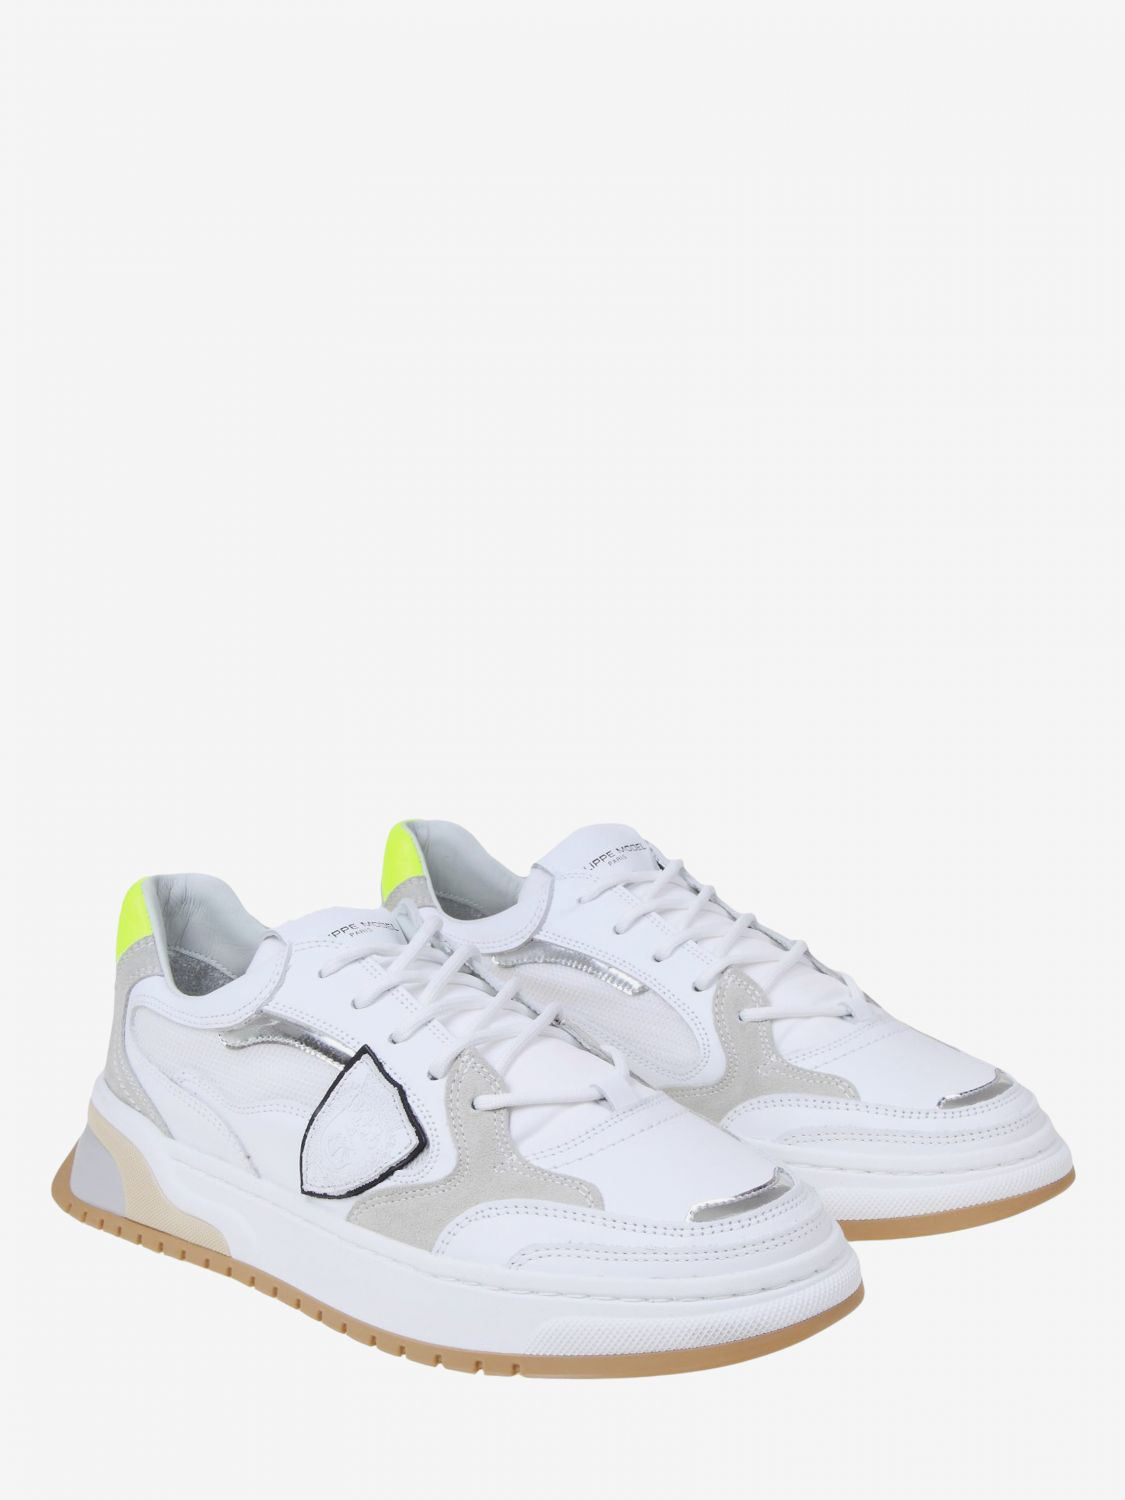 Baskets homme Philippe Model blanc 2